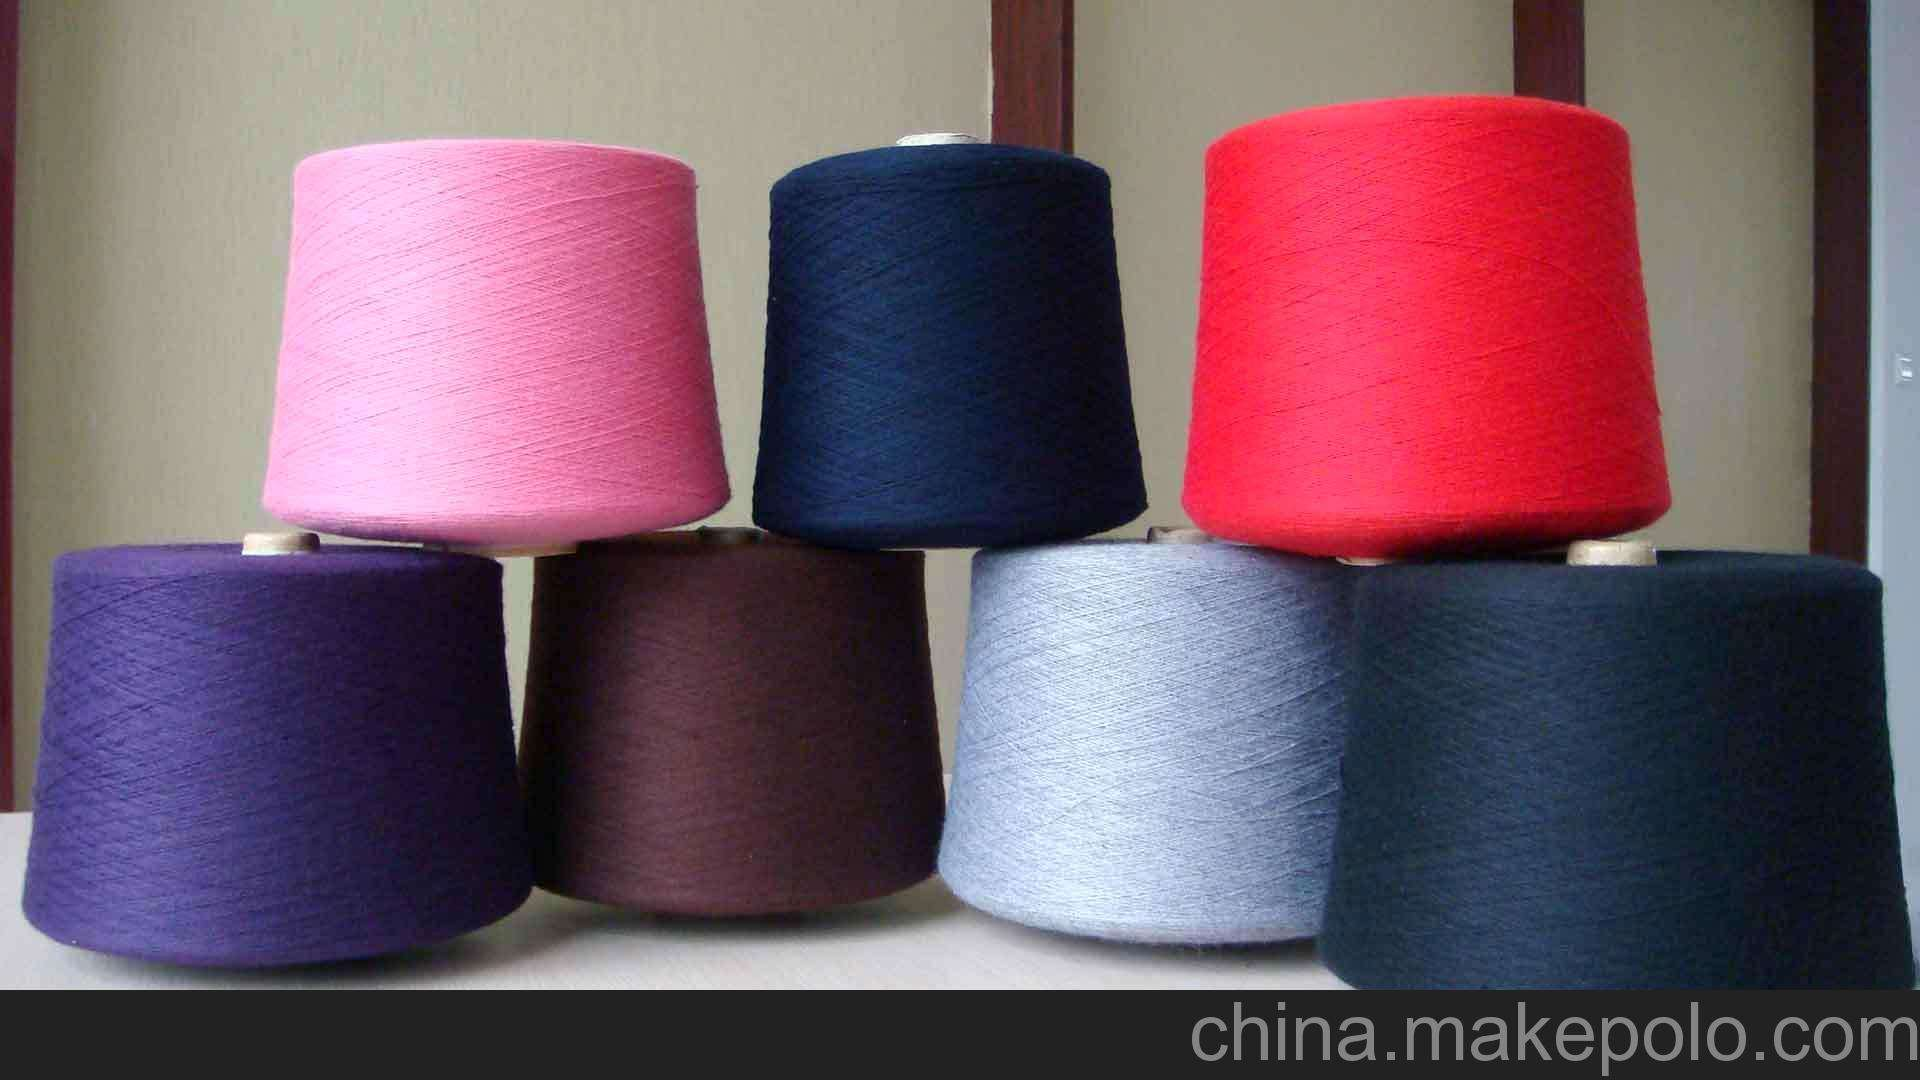 Diacetate staple yarn